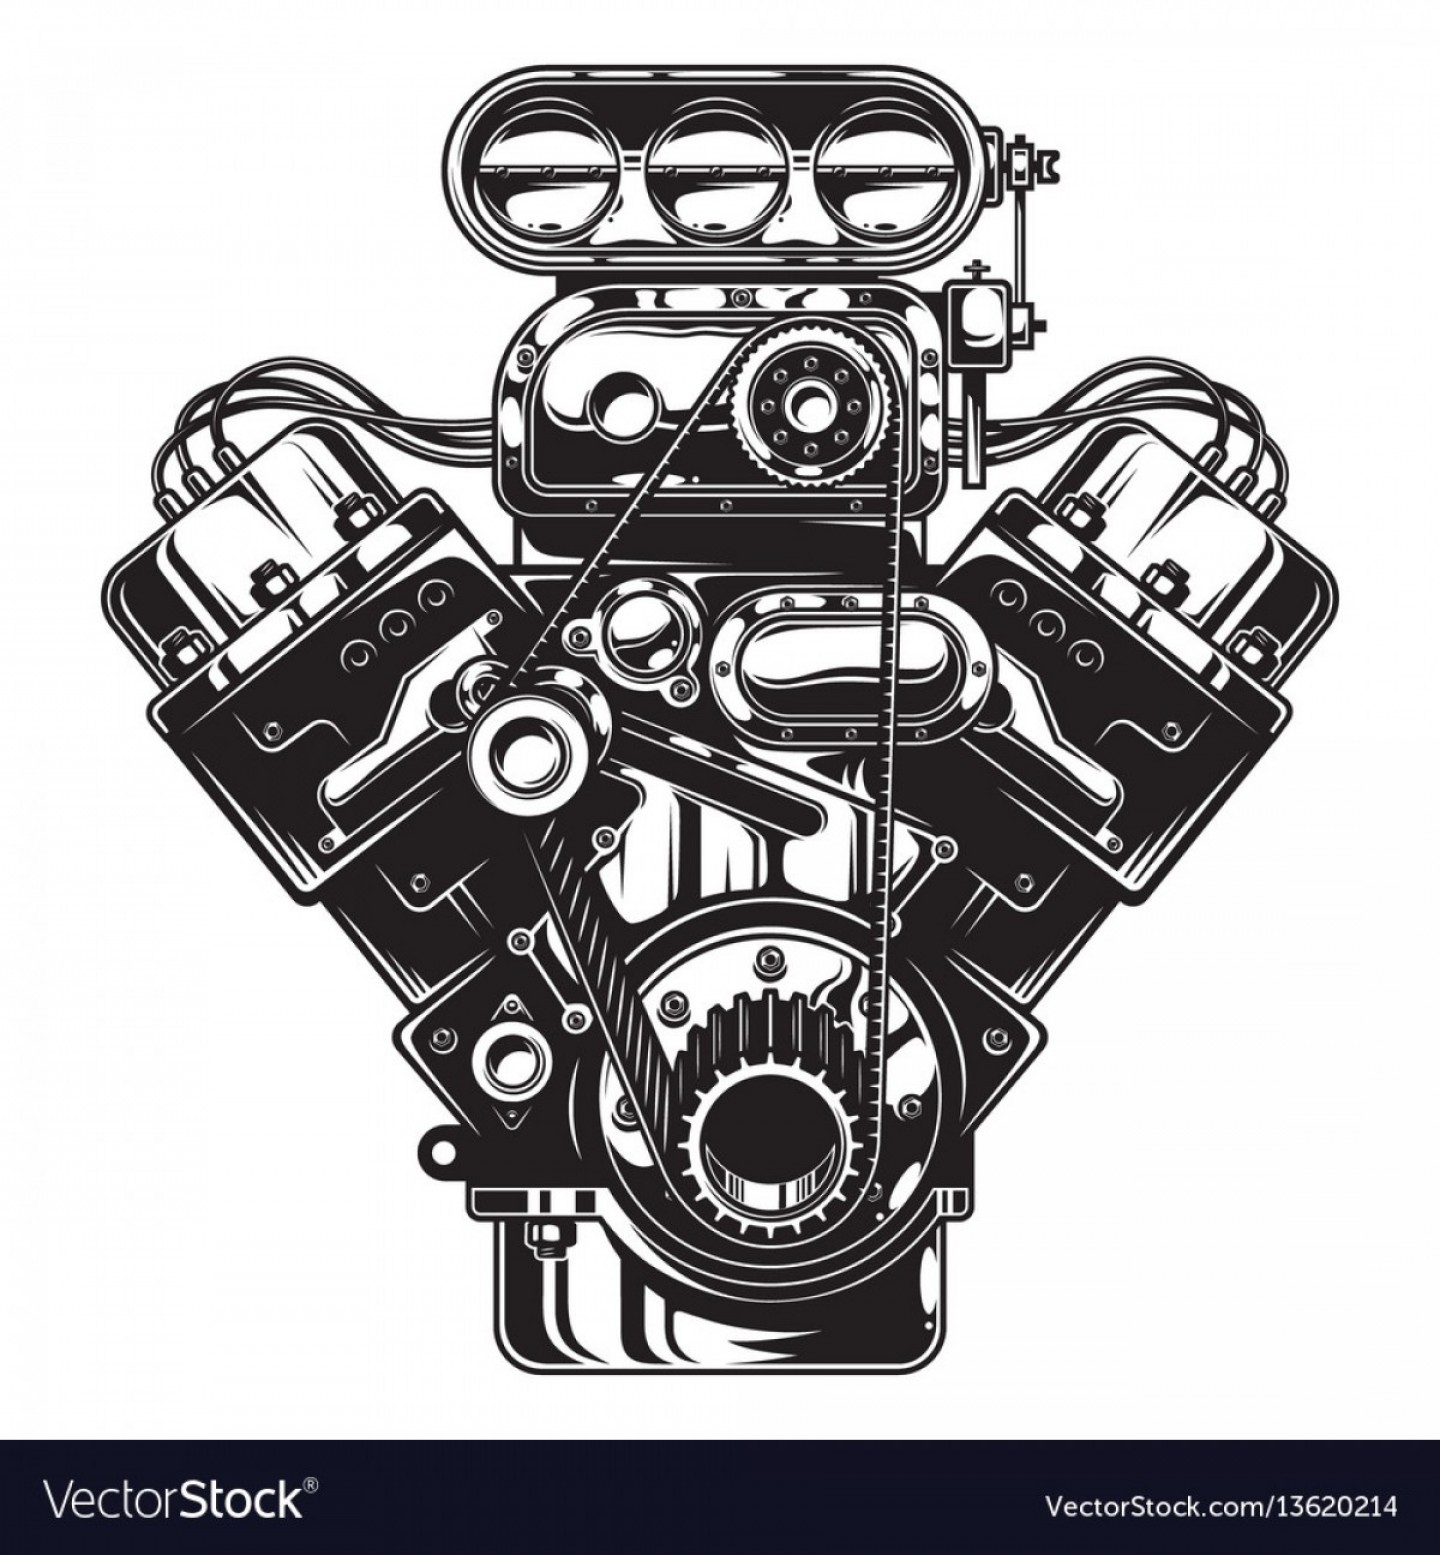 Motor Vector Graphics: Isolated Monochrome Of Car Engine Vector